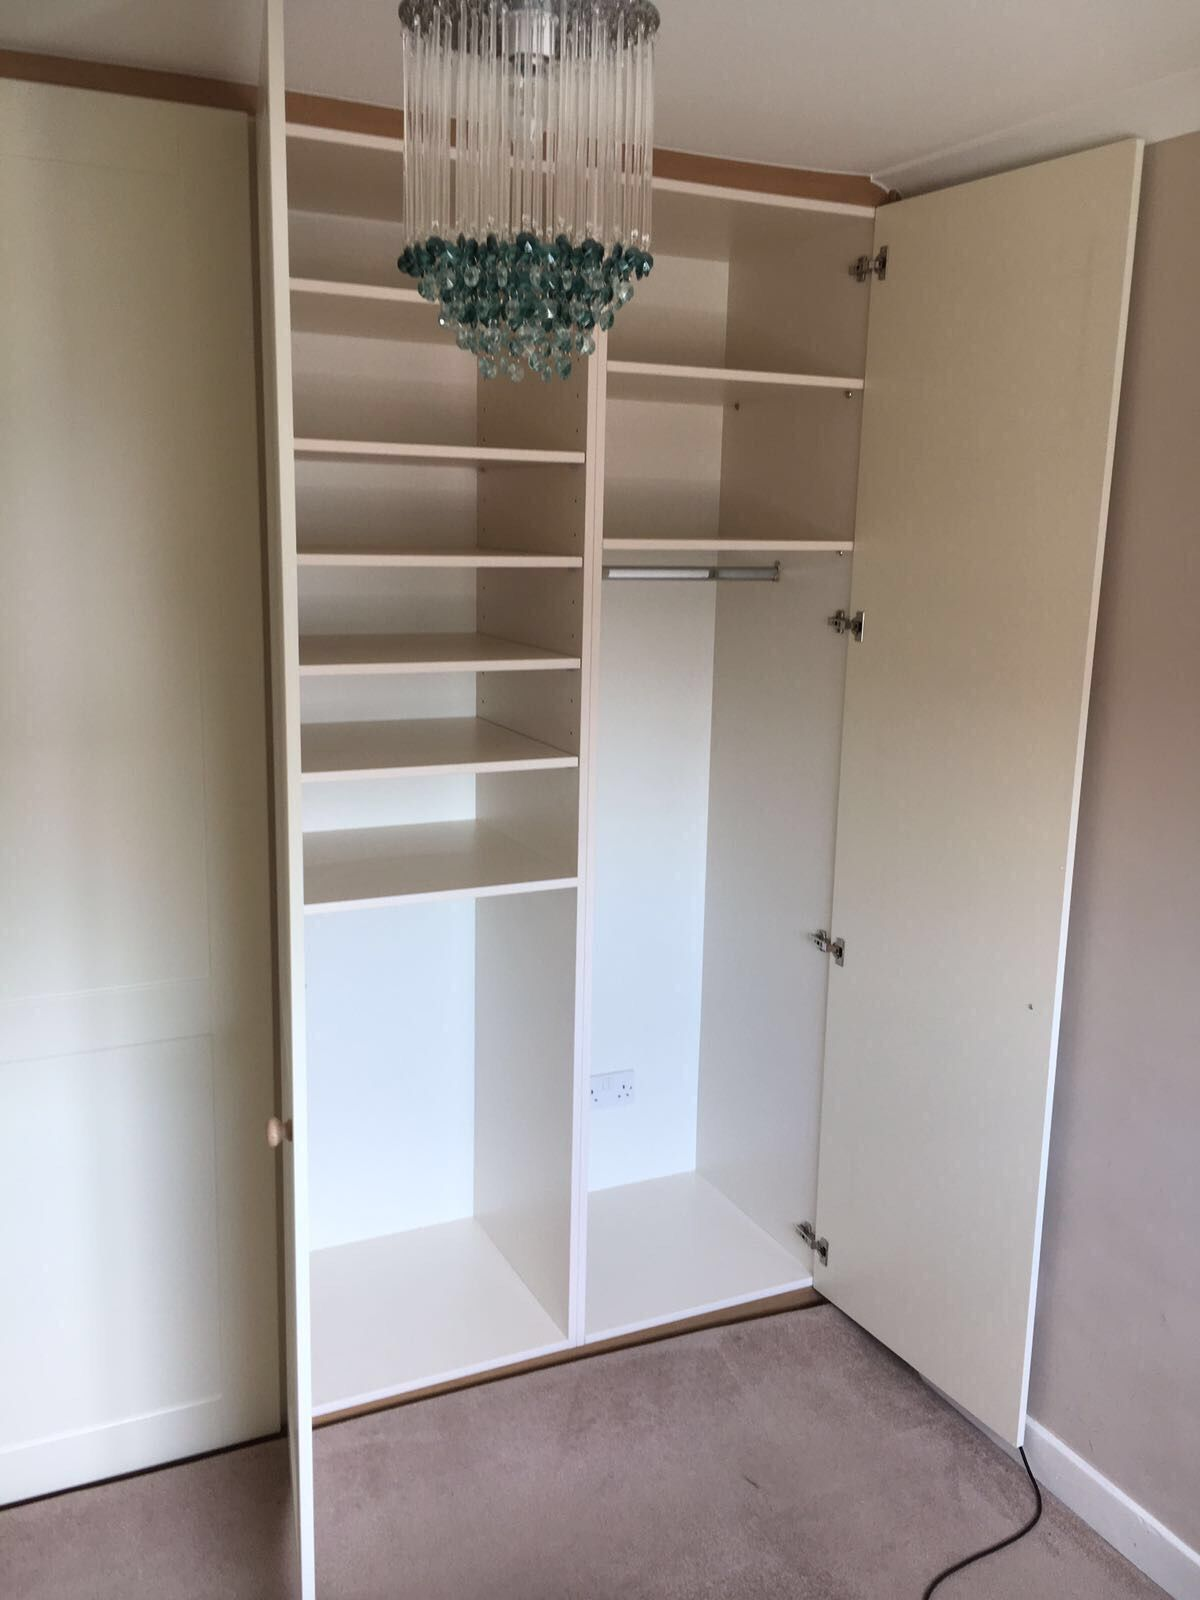 Stylish And Practical With Lots Of Space The Interior Can Be Built Bespoke For You Cream Shaker Doors And Woo Fitted Wardrobes Diy Furniture Fitted Bedrooms